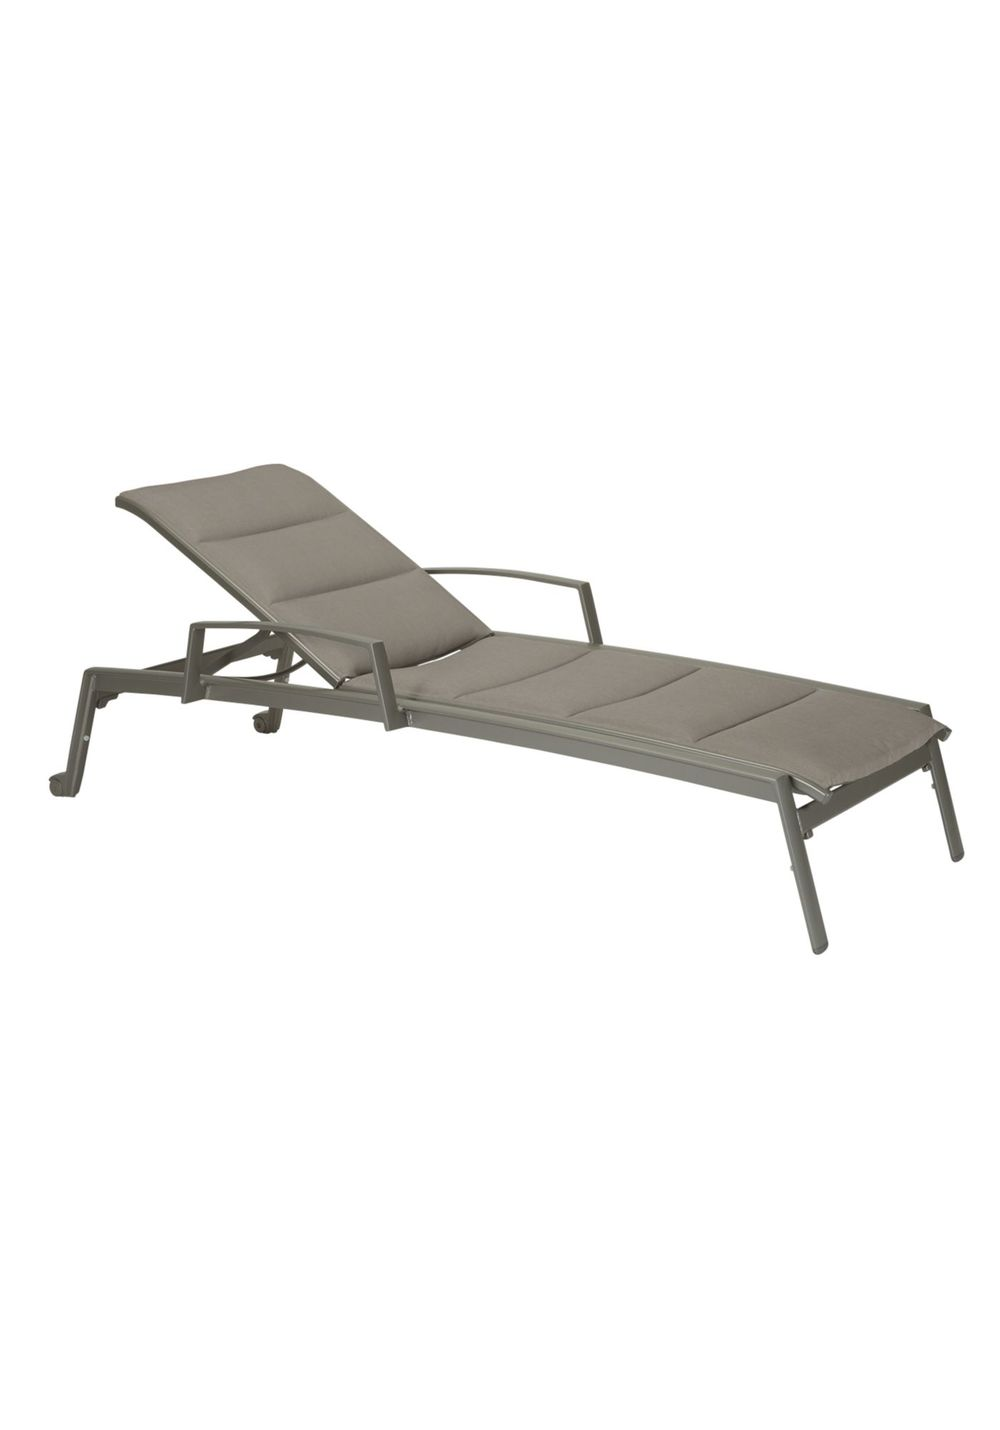 Tropitone Furniture - Chaise Lounge with Arms & Wheels